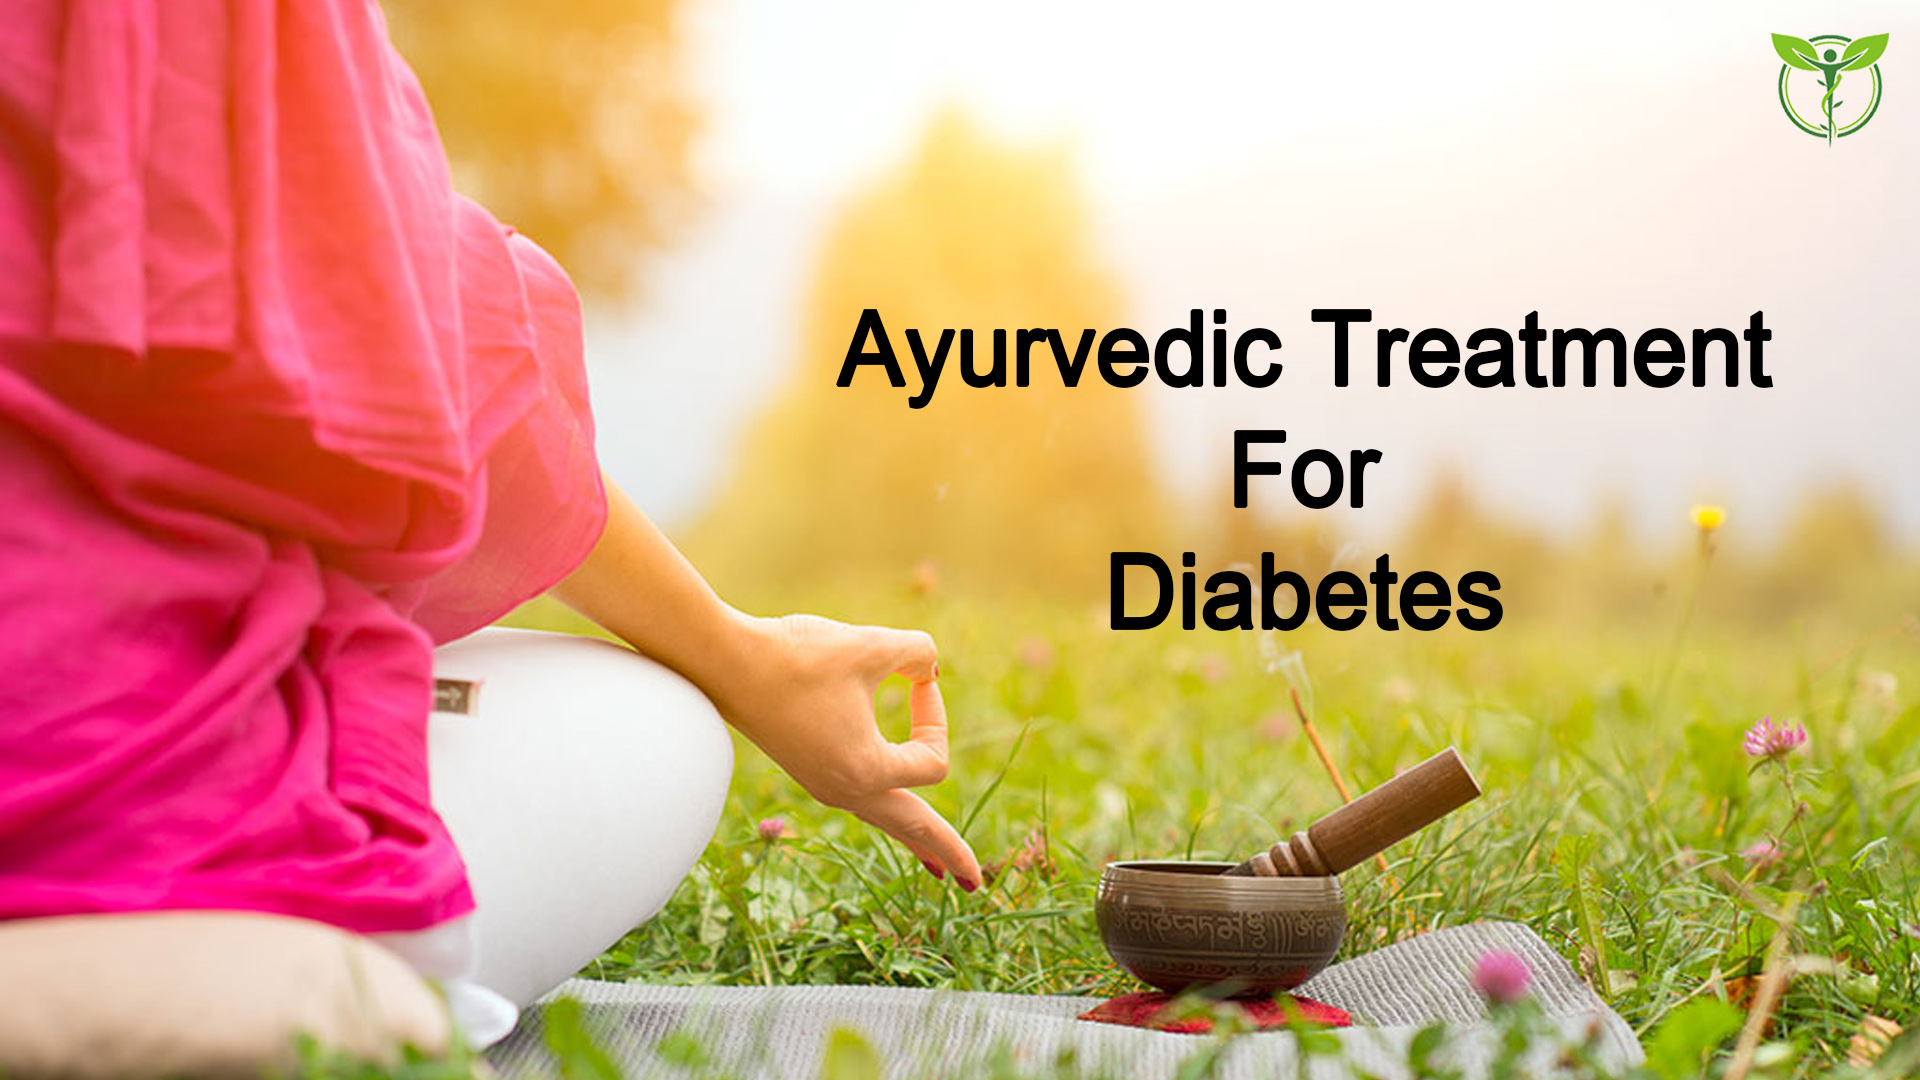 Home Remedies for Indian: Ayurvedic Treatment For Diabetes